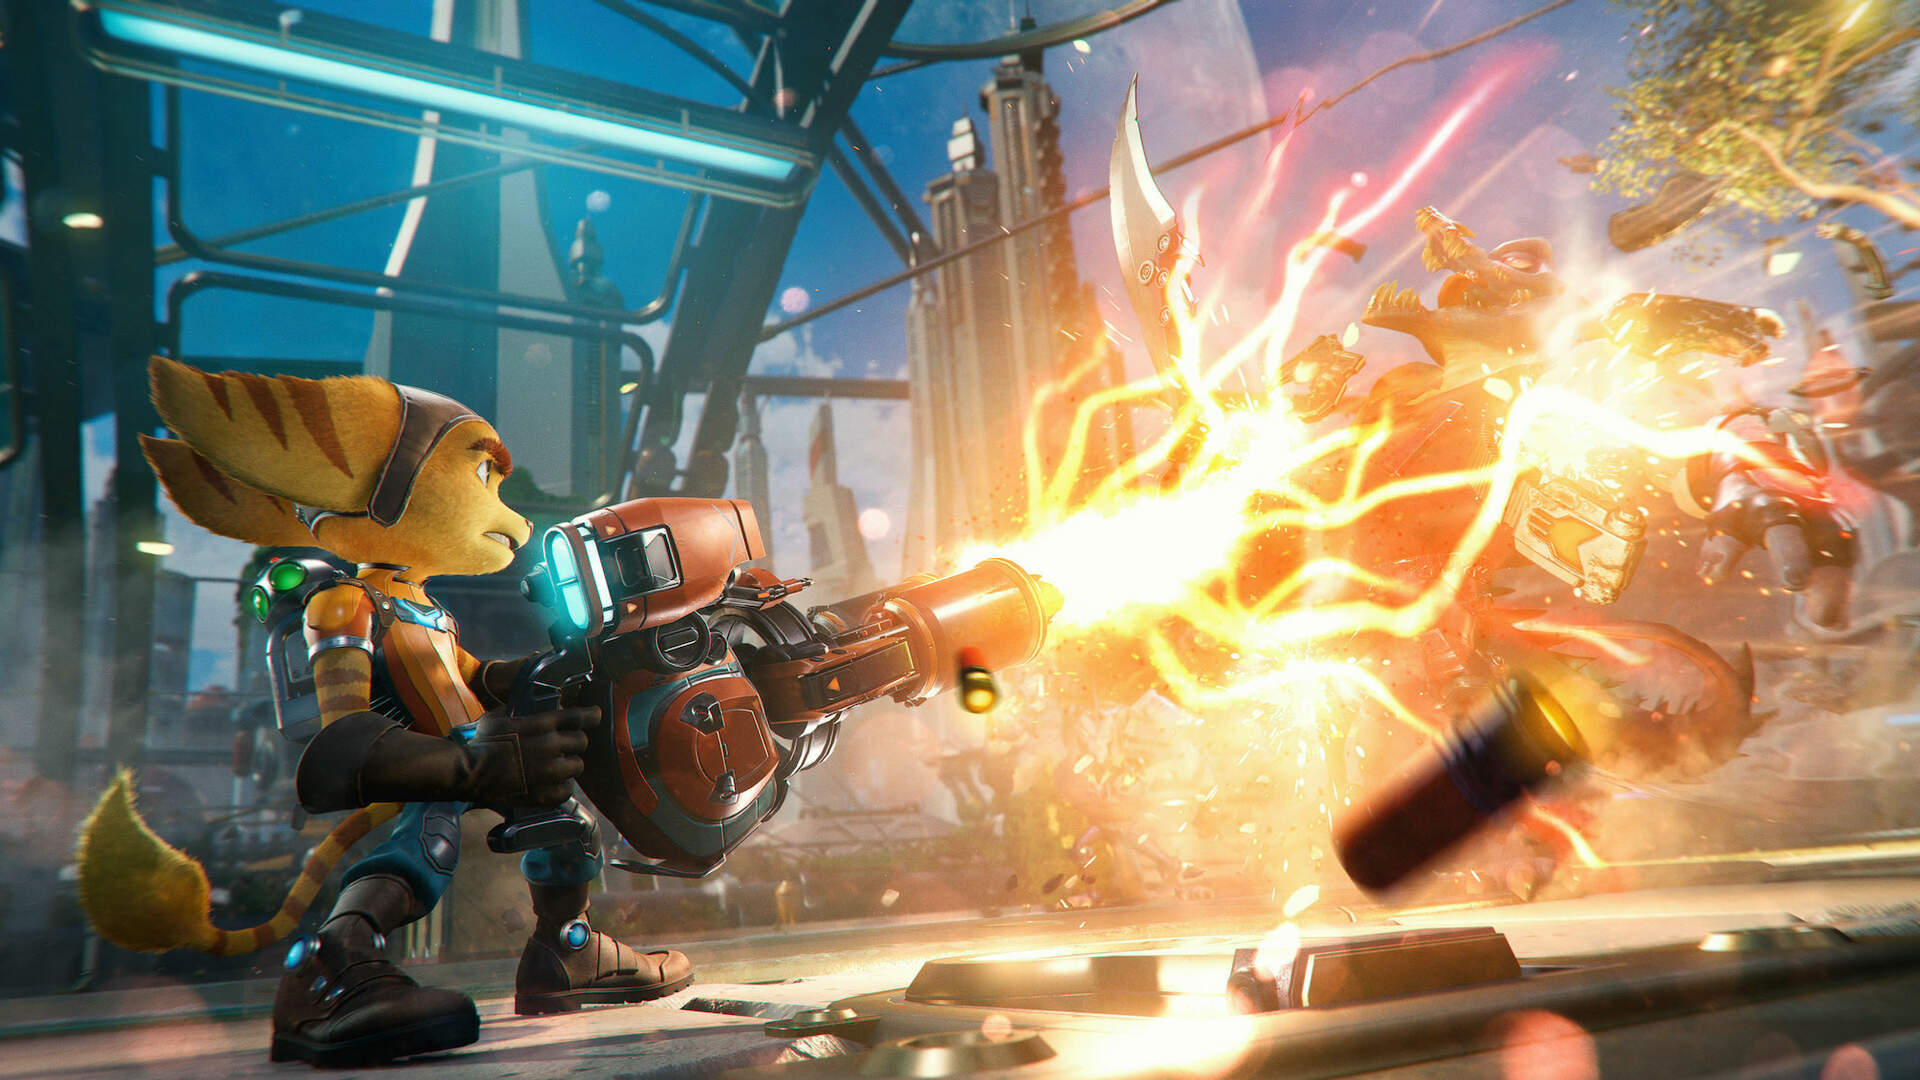 Insomniac Reaffirms PS5 Exclusivity for Ratchet & Clank: Rift Apart